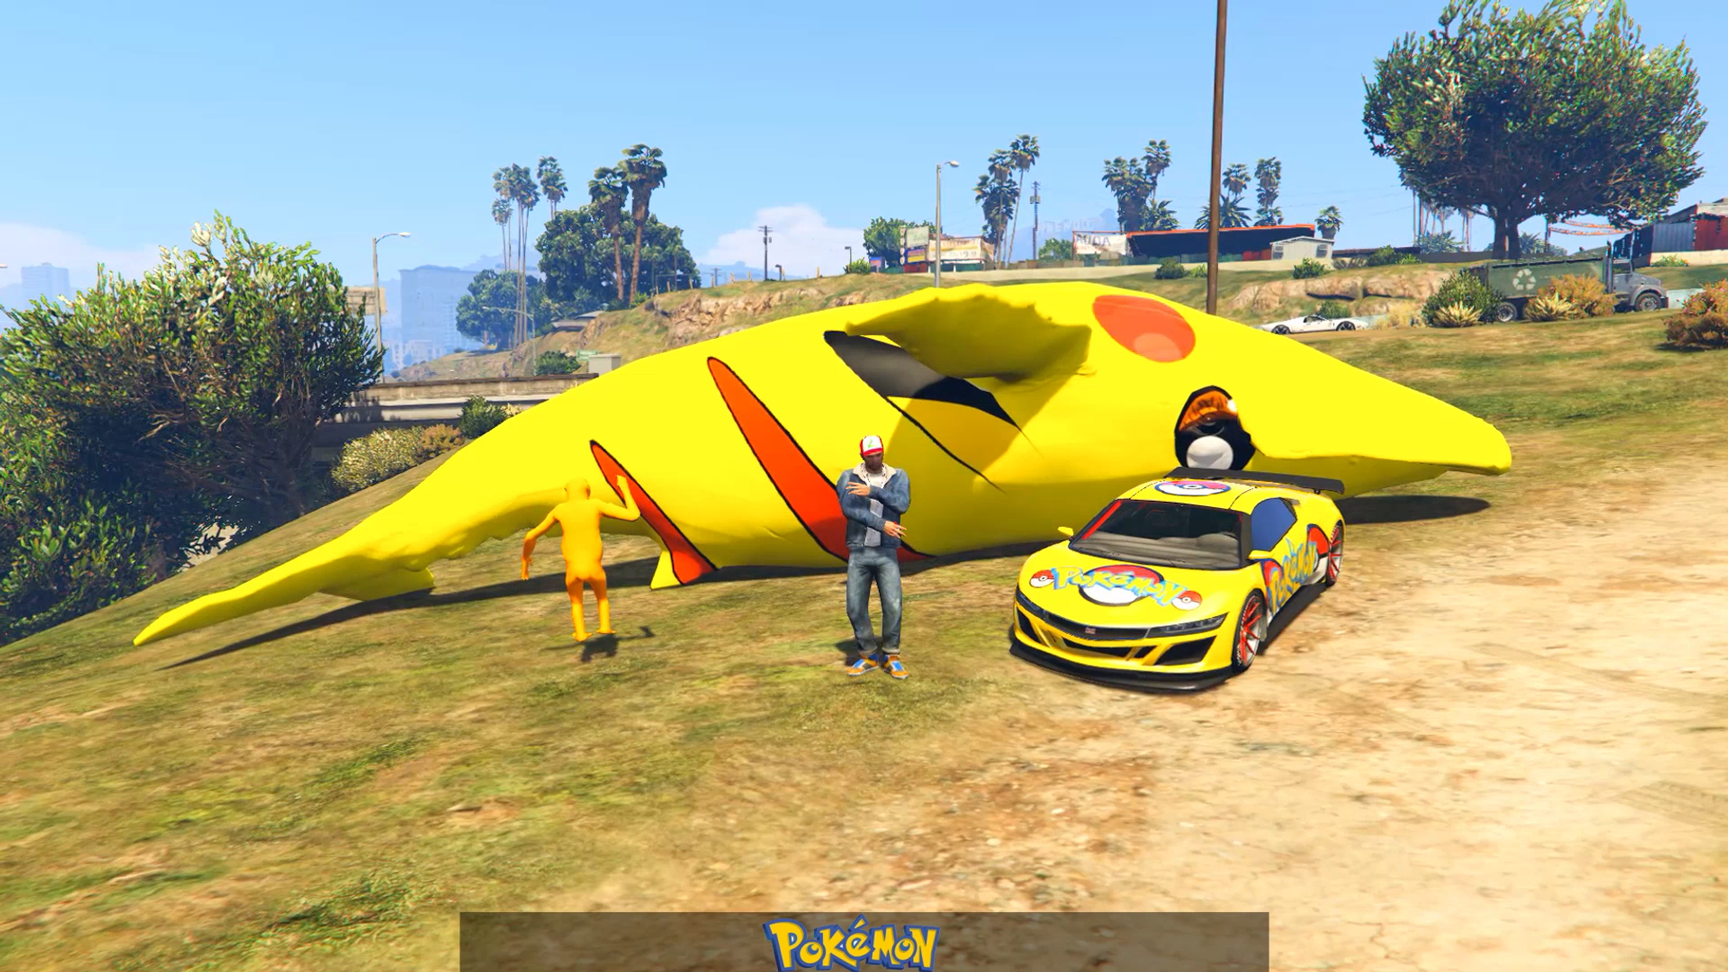 gta 4 cheats for helicopter with Pokemon Car on Tav 37 Valkyrie Ssto Shuttle From Avatar together with 9035 Jetpack additionally Wallpaper additionally 27866 Buckingham Valkyrie Mod 0 moreover 71689 Bell Uh 1d Huey Bundeswehr.